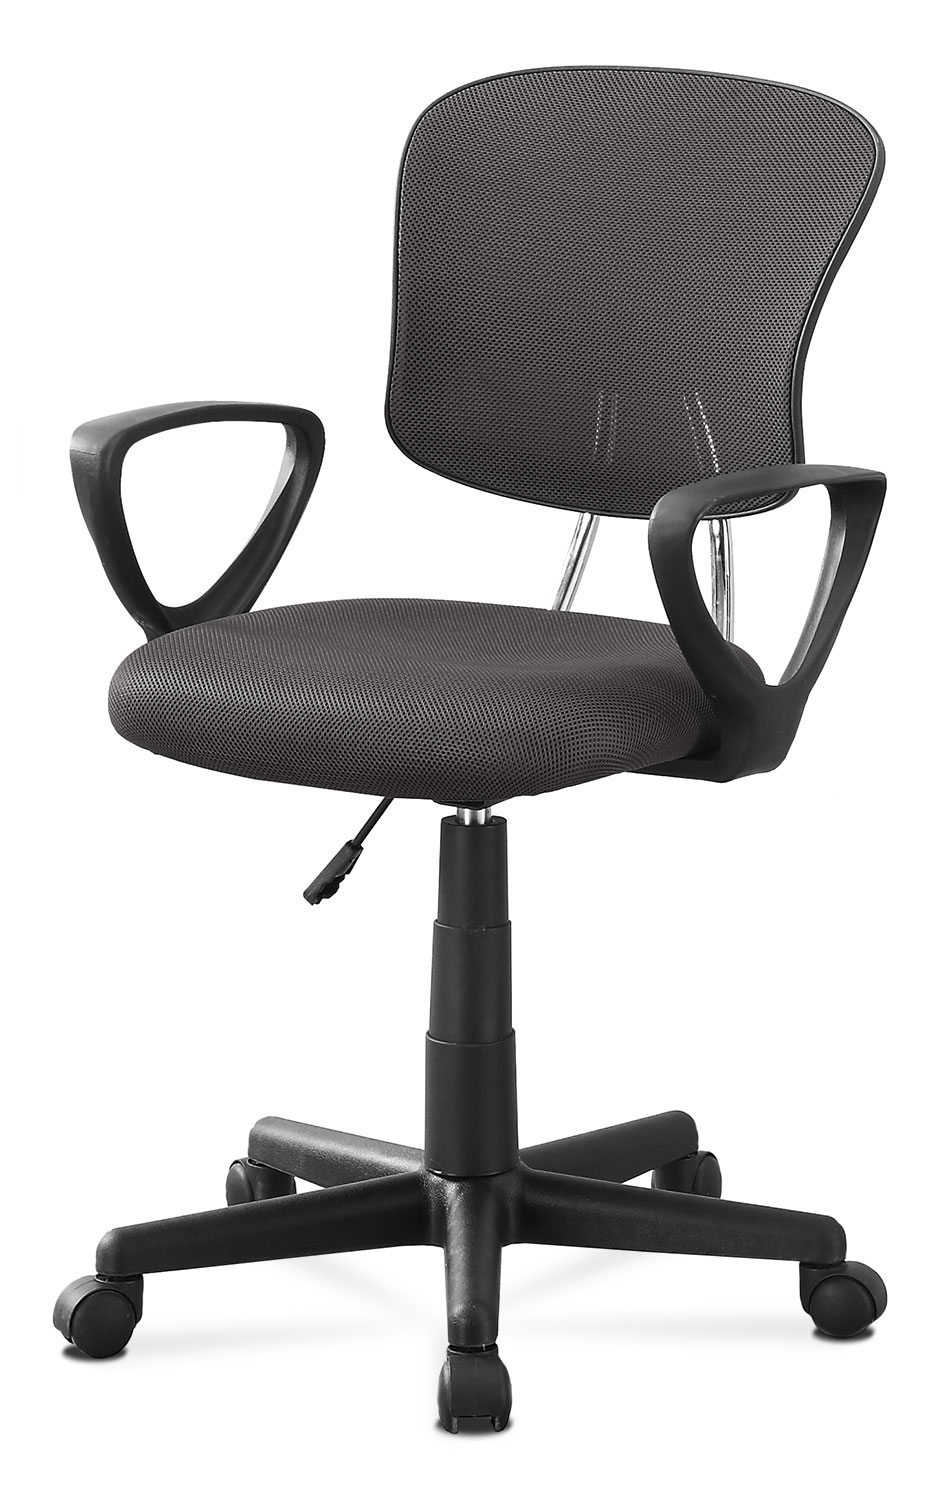 Home Office Furniture - Polito Office Chair - Grey